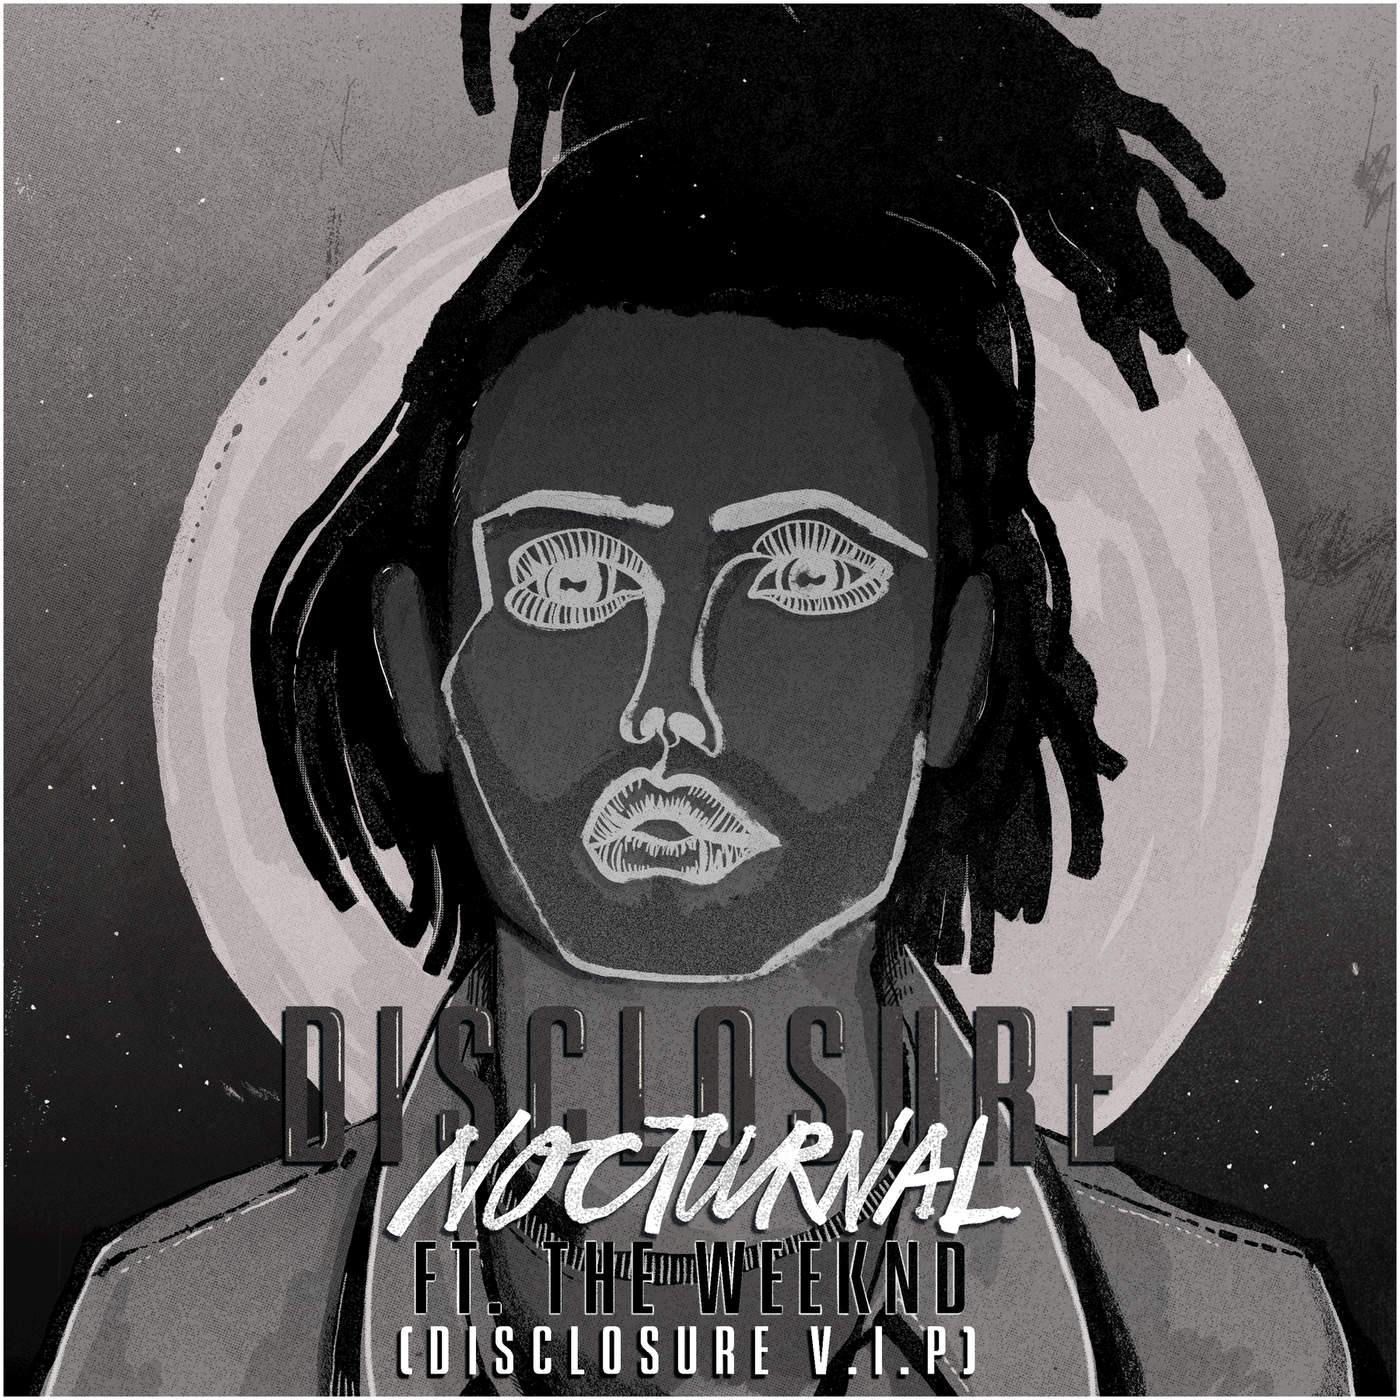 Disclosure - Nocturnal (feat. The Weeknd) [Disclosure V.I.P.] - Single  Cover